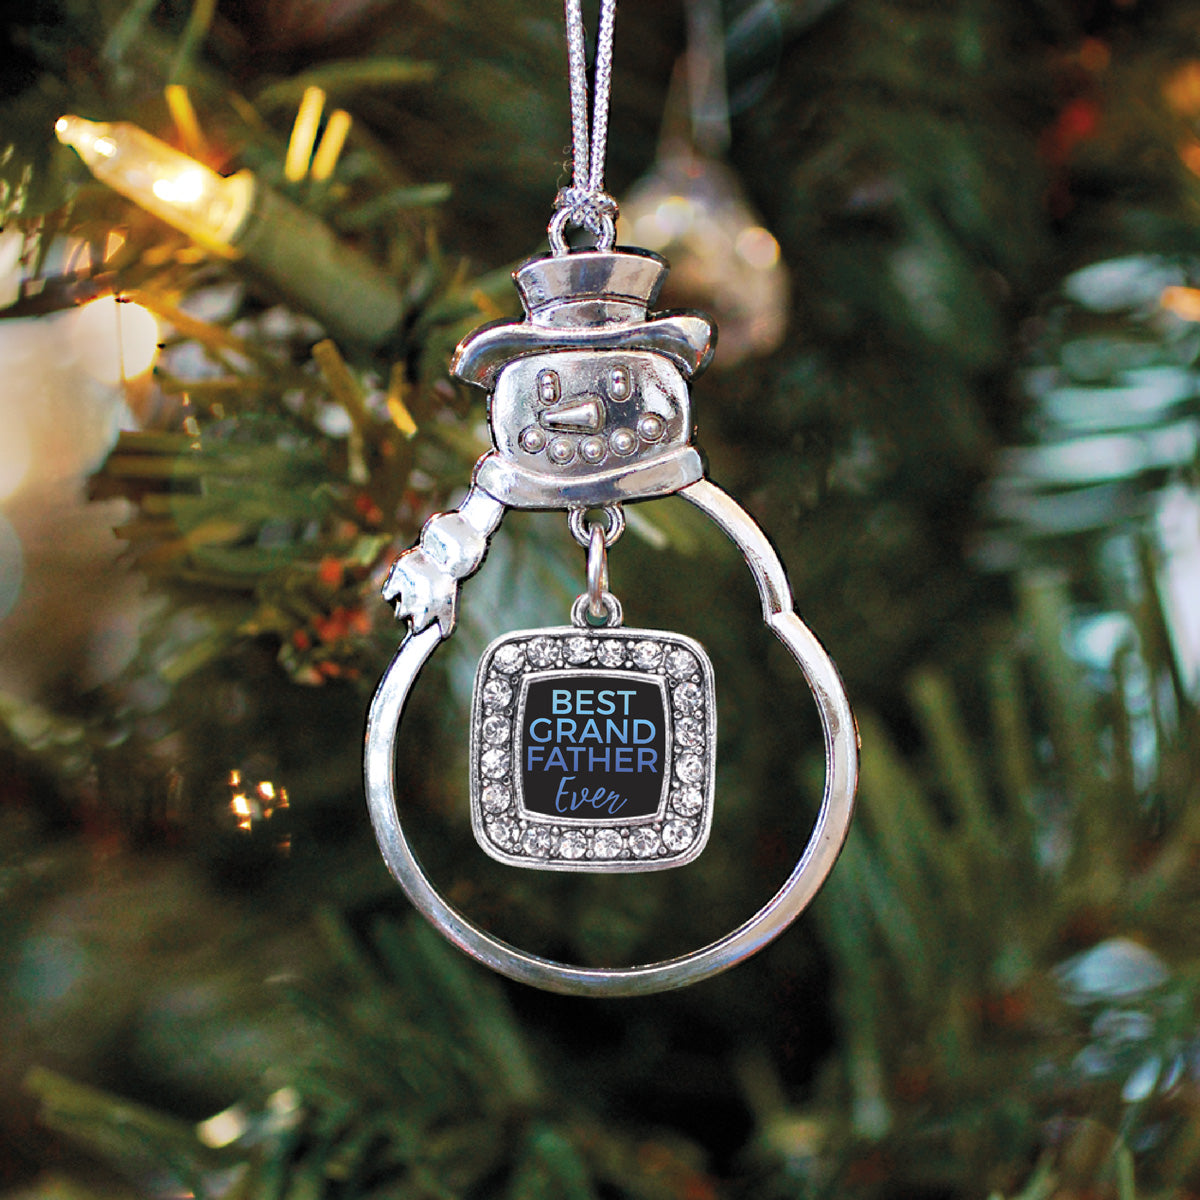 Best Grandfather Ever Square Charm Christmas / Holiday Ornament